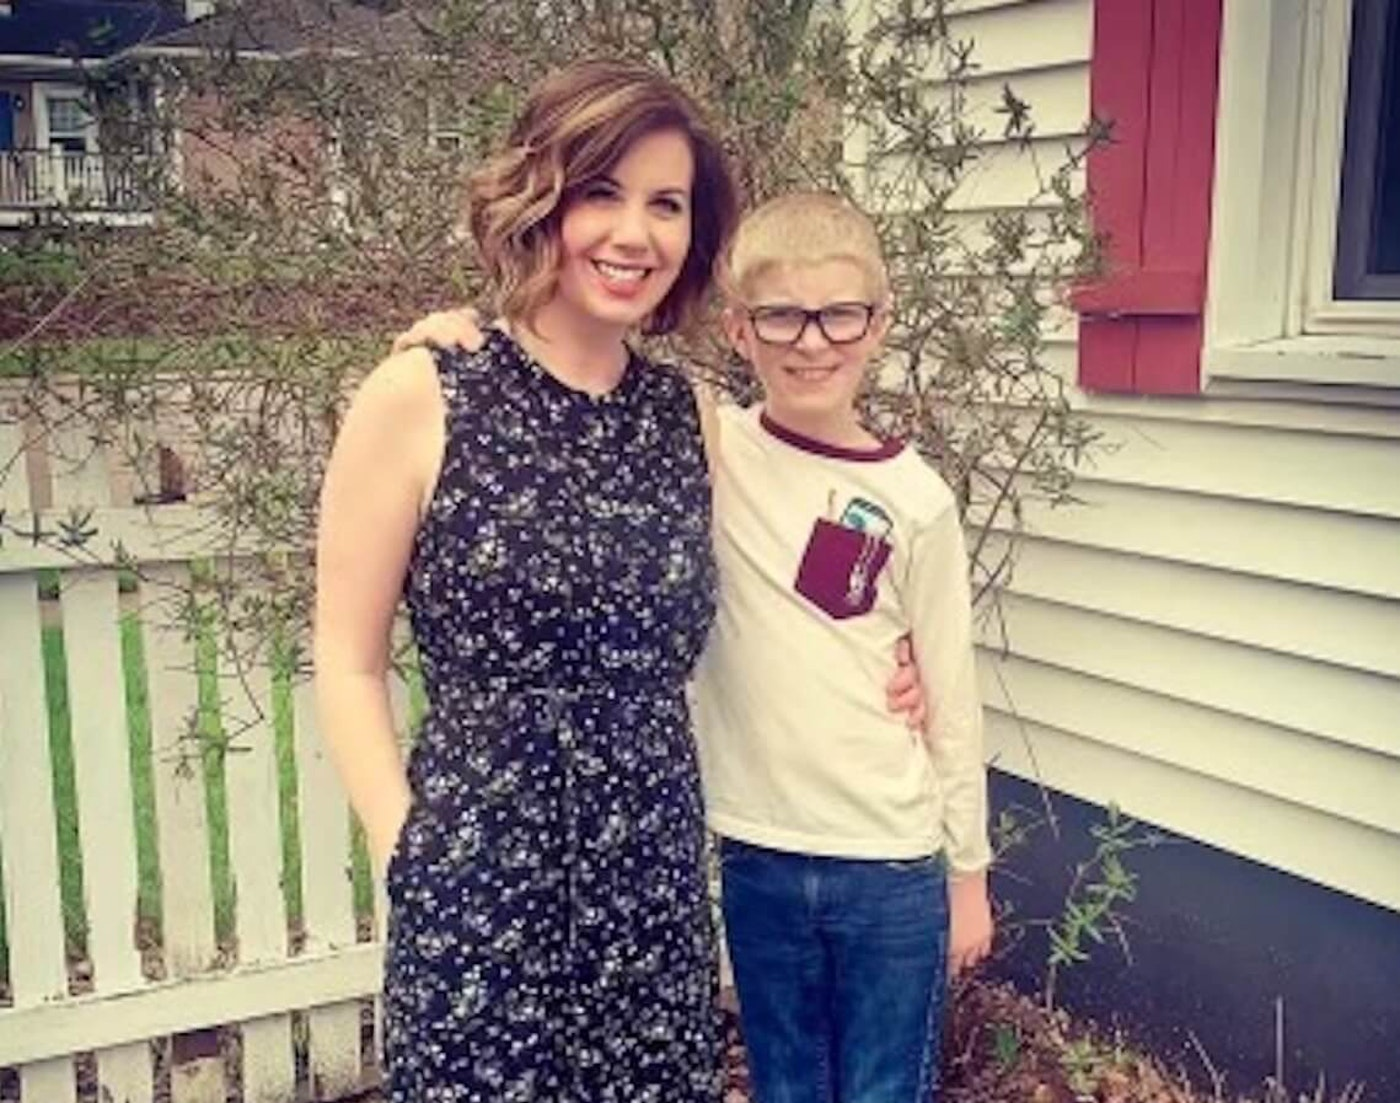 Danielle Ralston said she is constantly nervous that her 10-year-old son Graham will contract COVID-19 and experience extreme symptoms because he has a rare stomach illness that makes him more susceptible to the virus. (Photo courtesy of Danielle Ralston)